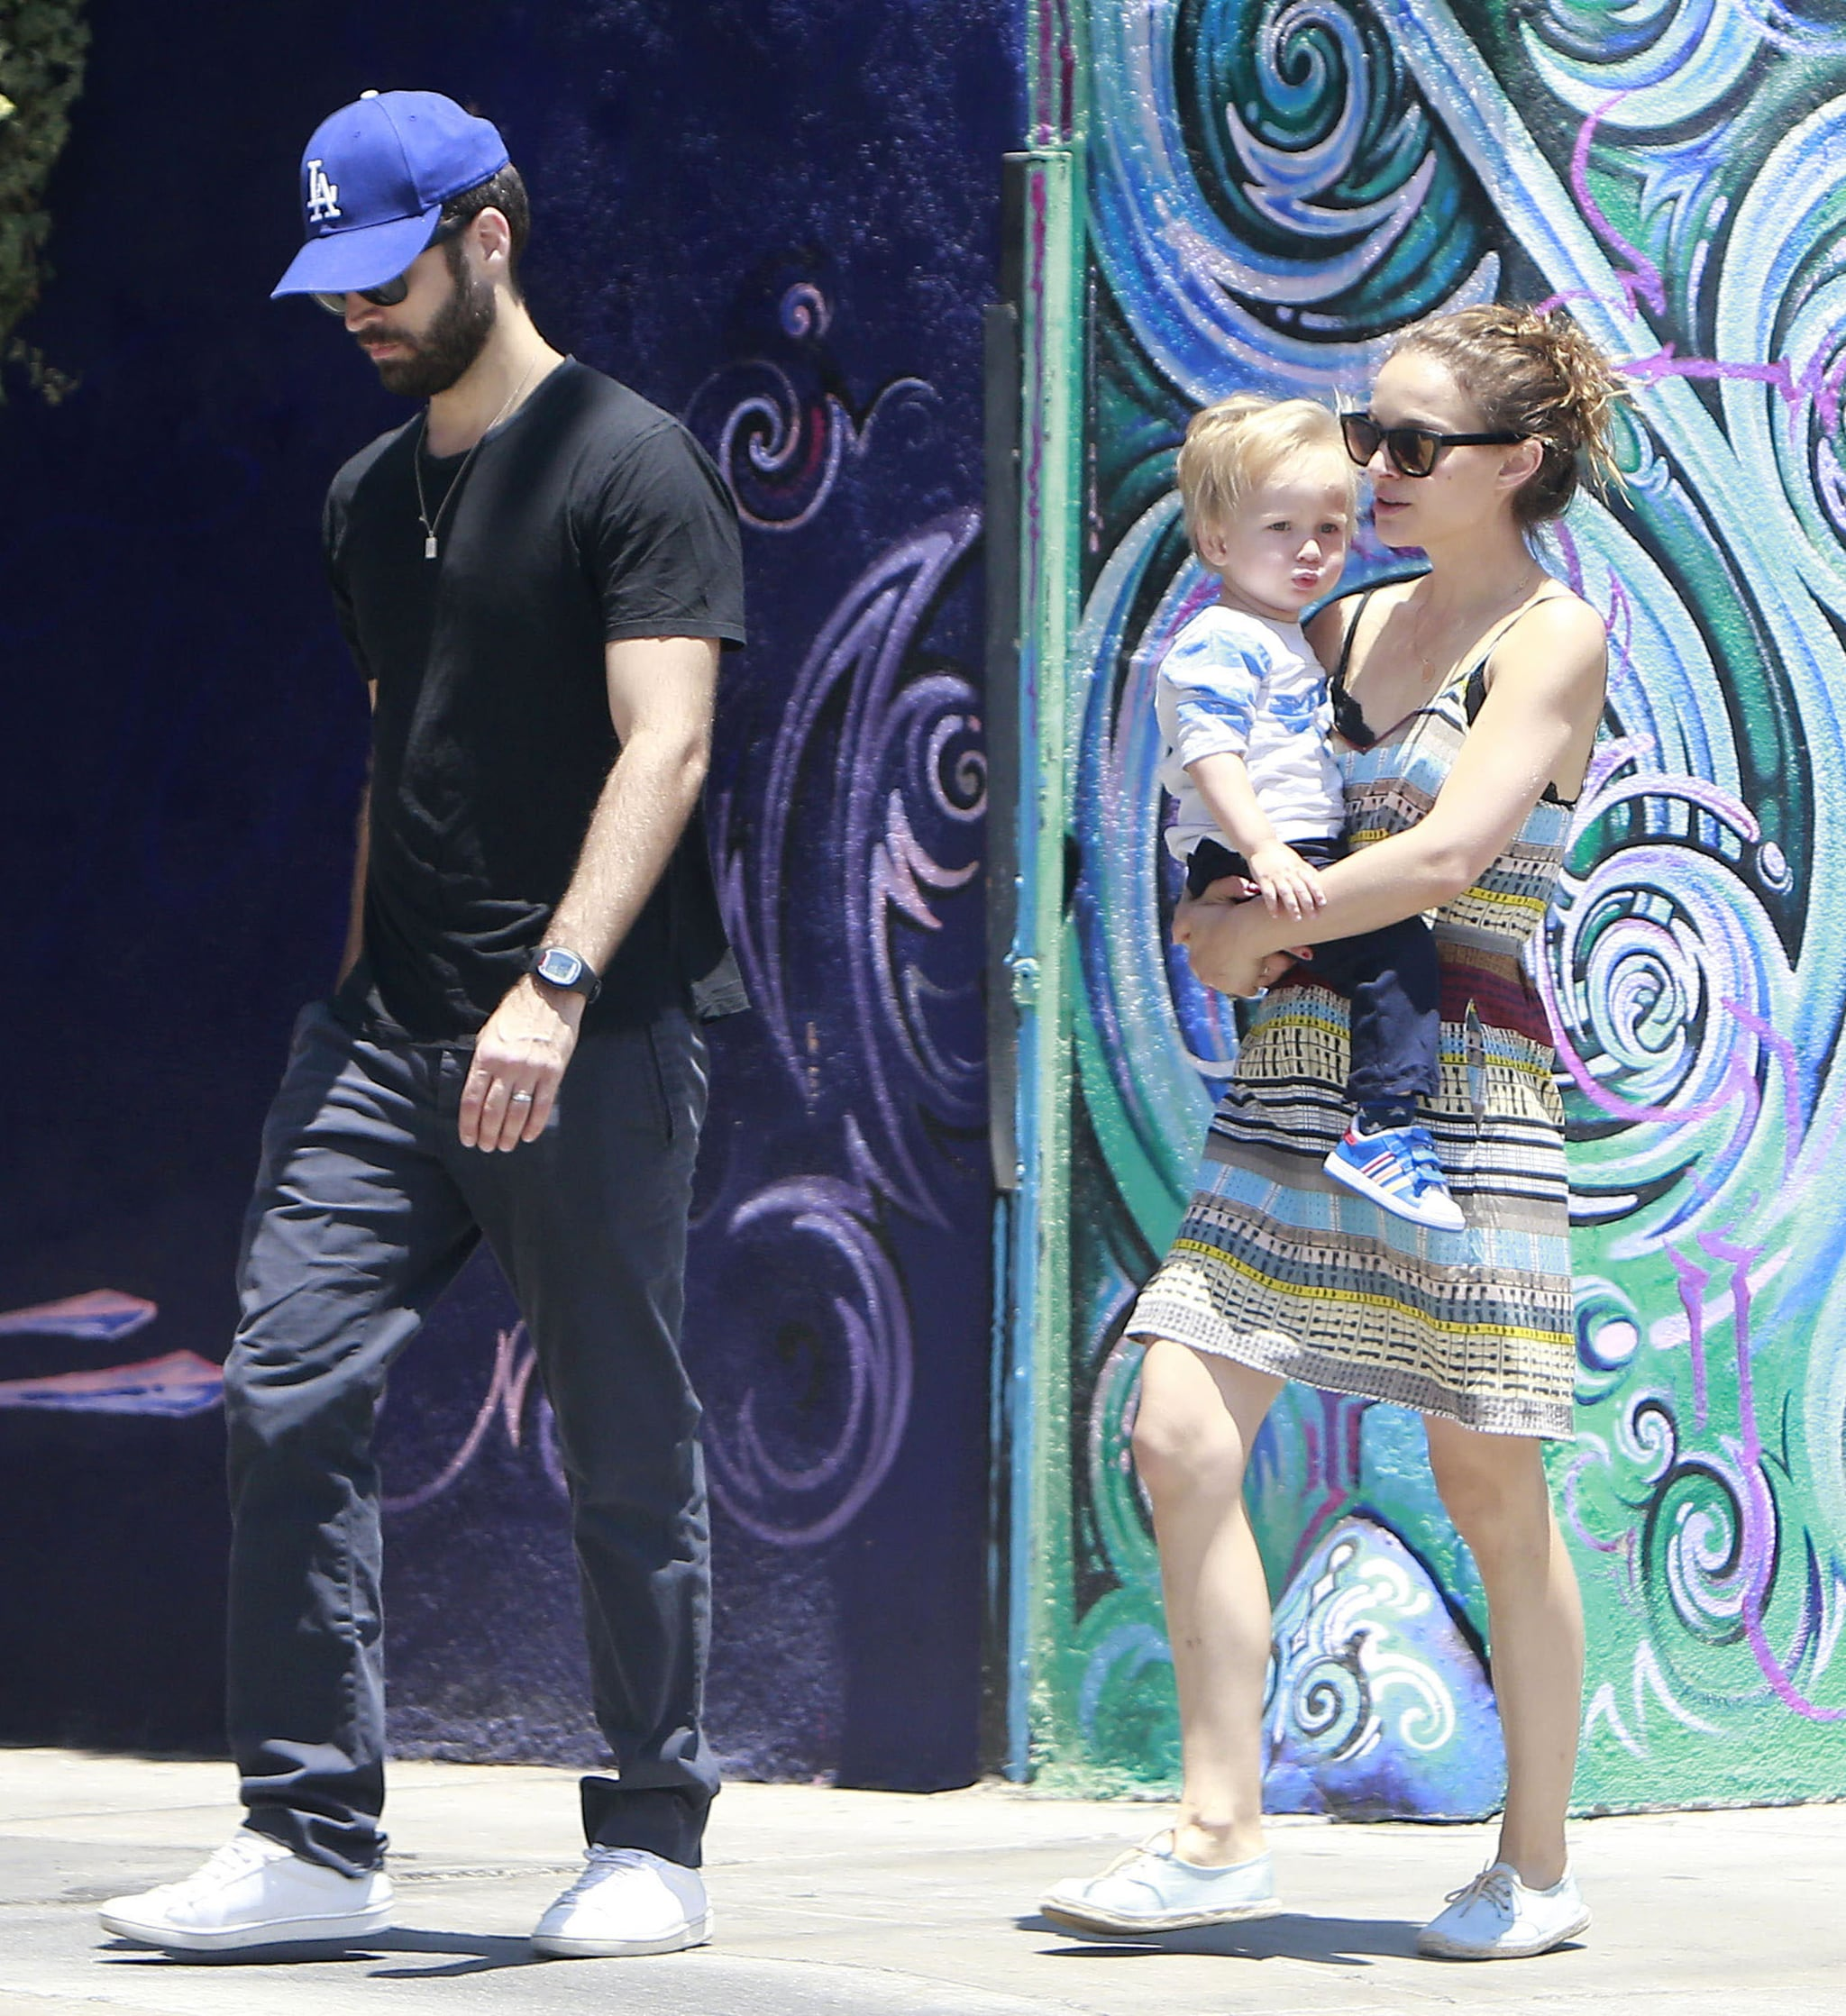 Natalie Portman carried Aleph down the street.